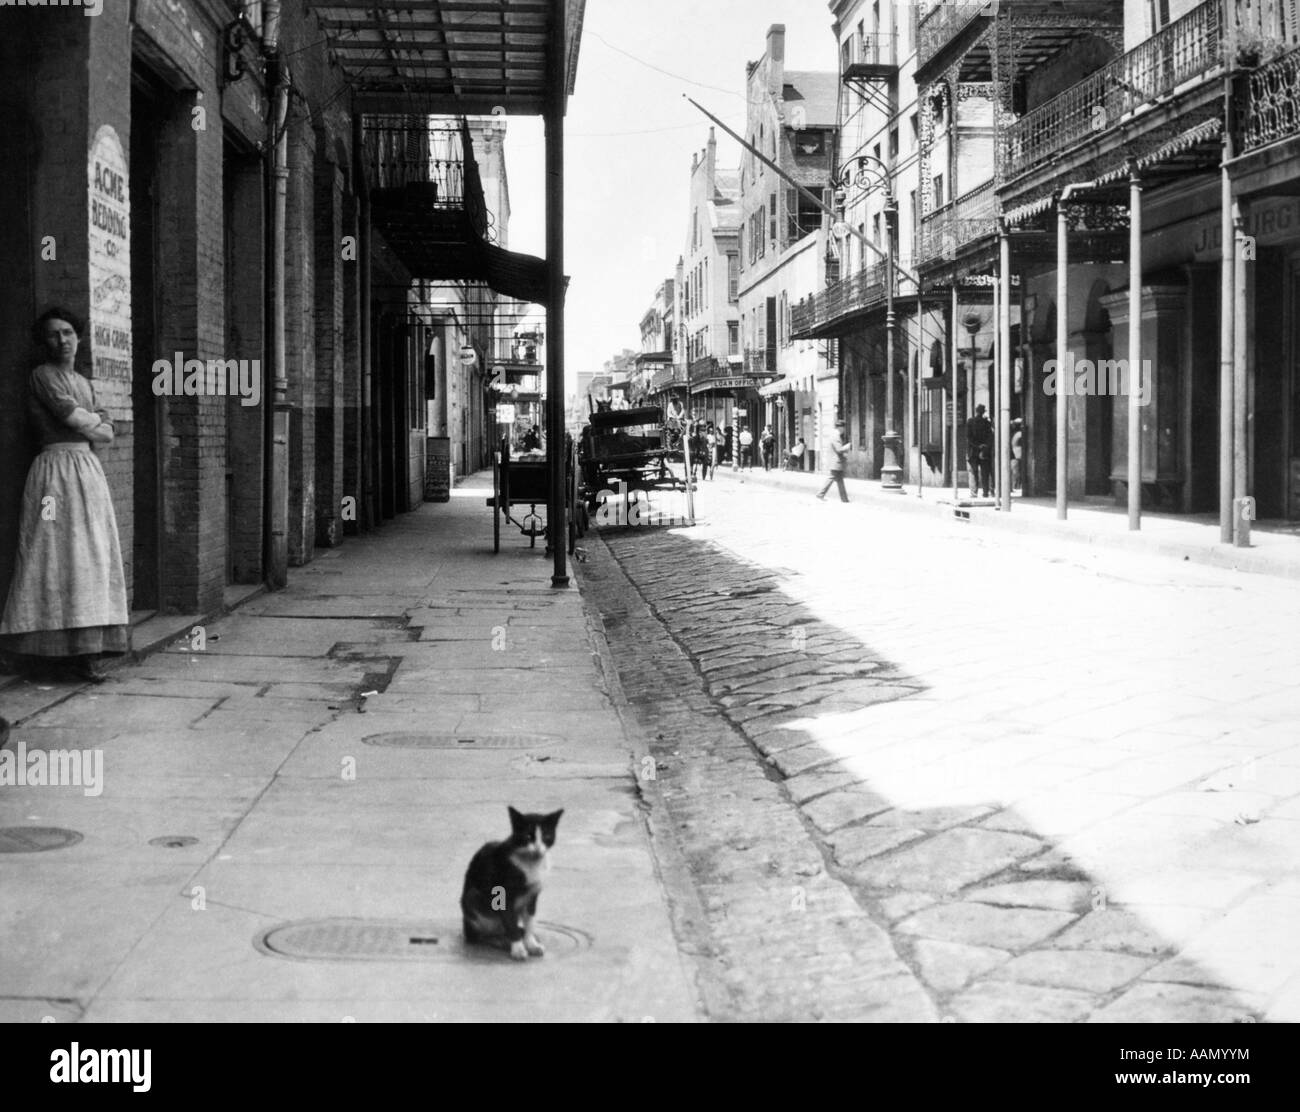 EARLY 1900s CAT SITTING STREET OLDER SECTION OF NEW ORLEANS LOUISIANA USA - Stock Image